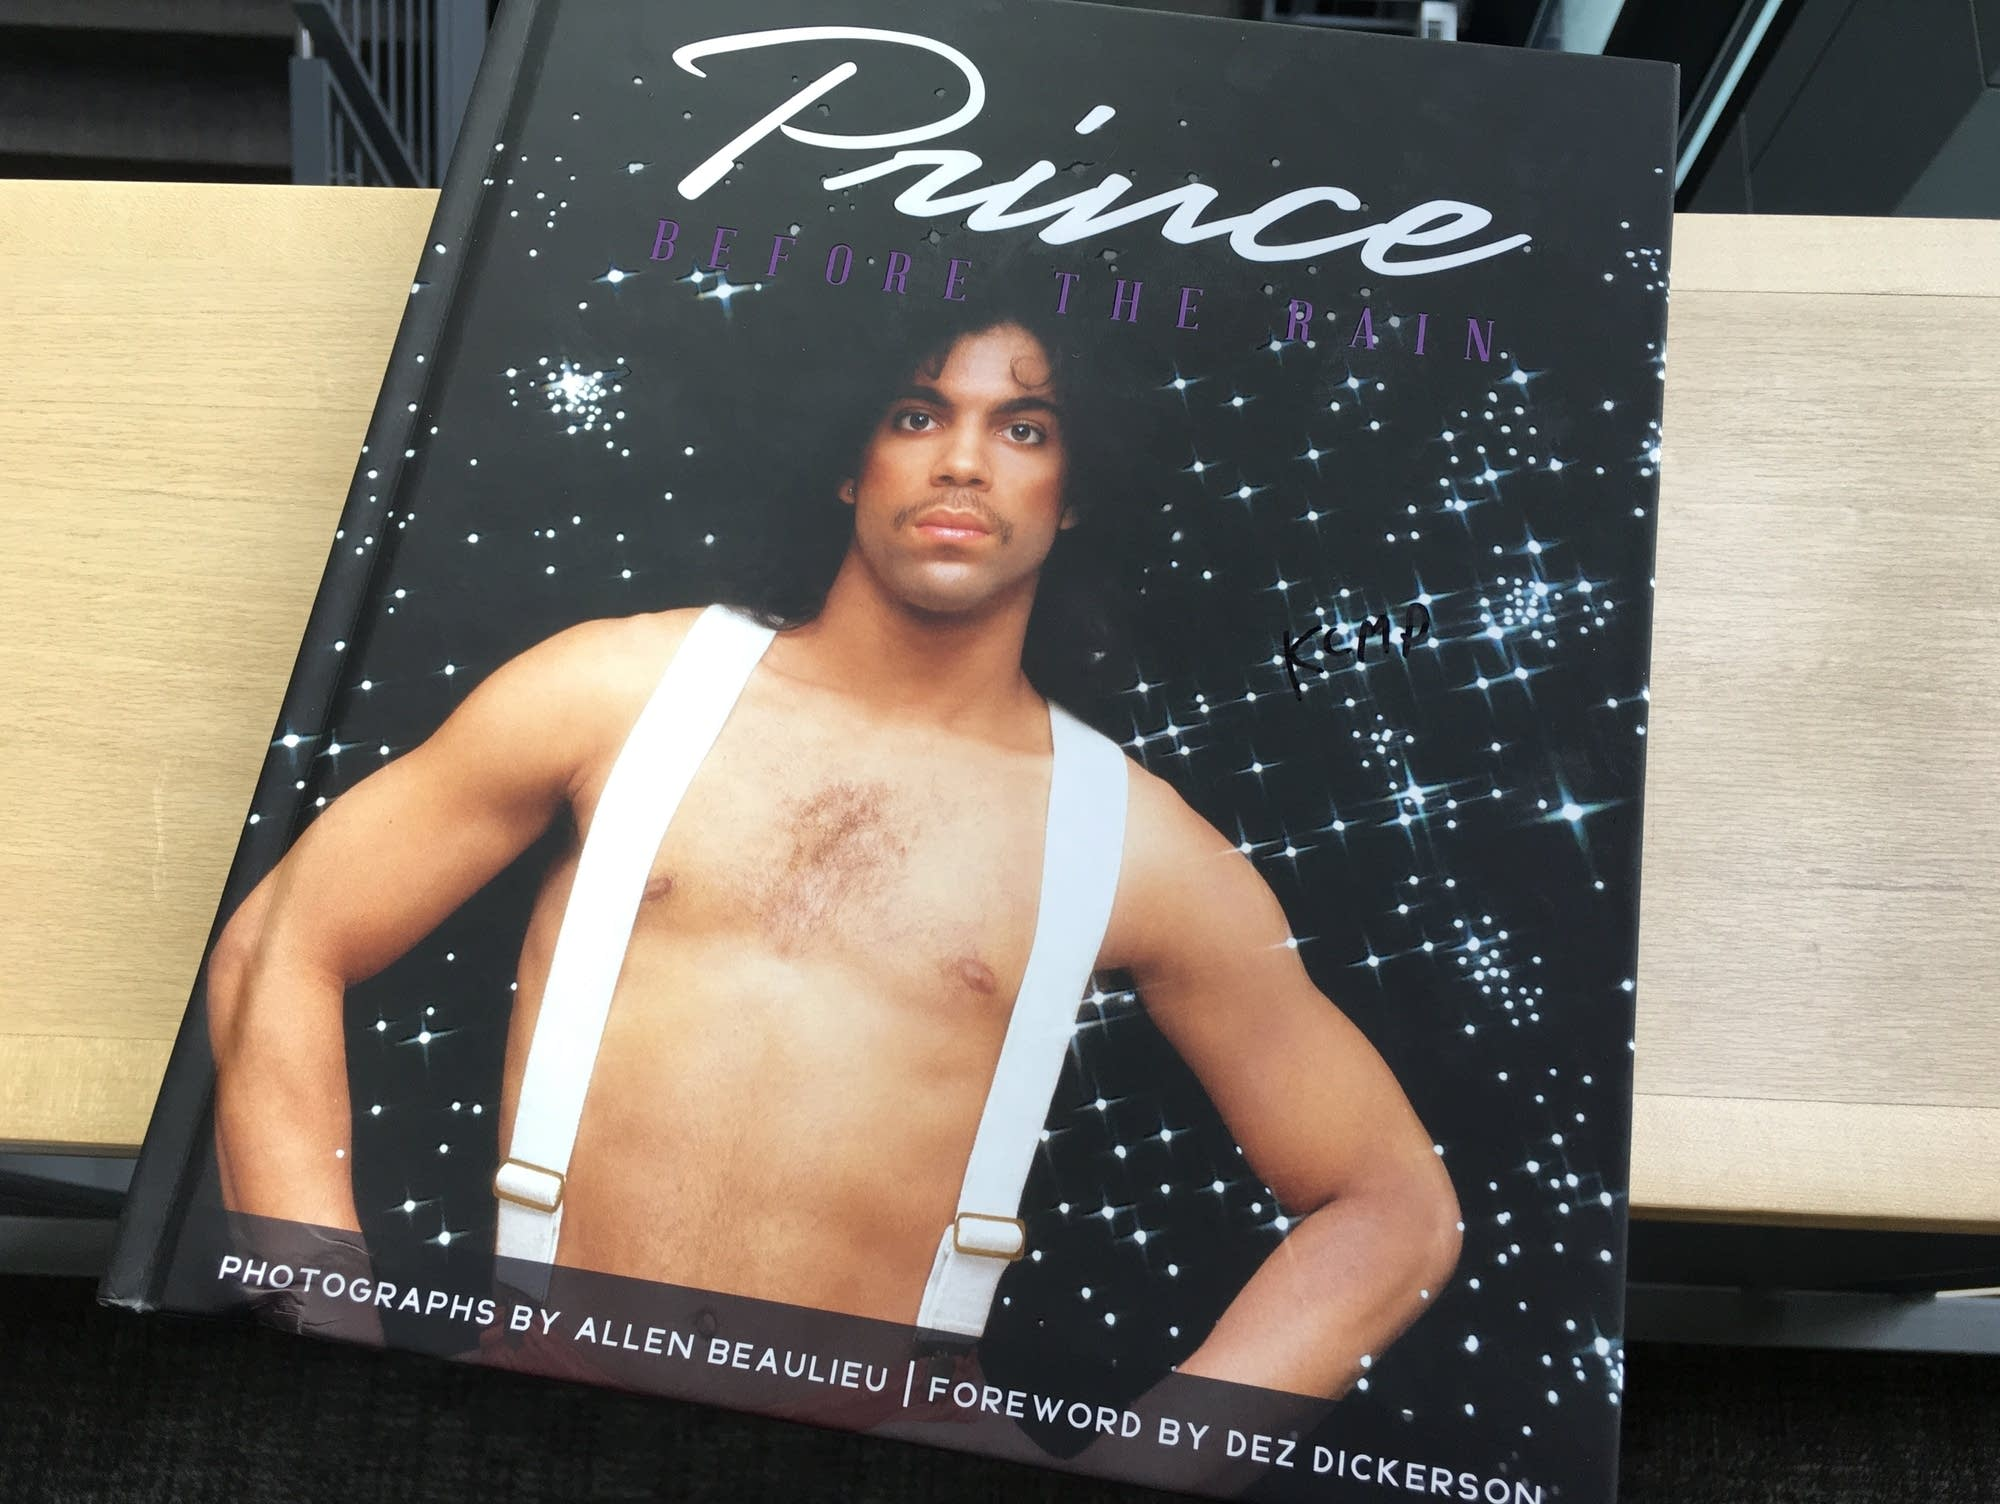 Allen Beaulieu's 'Prince: Before the Rain.'